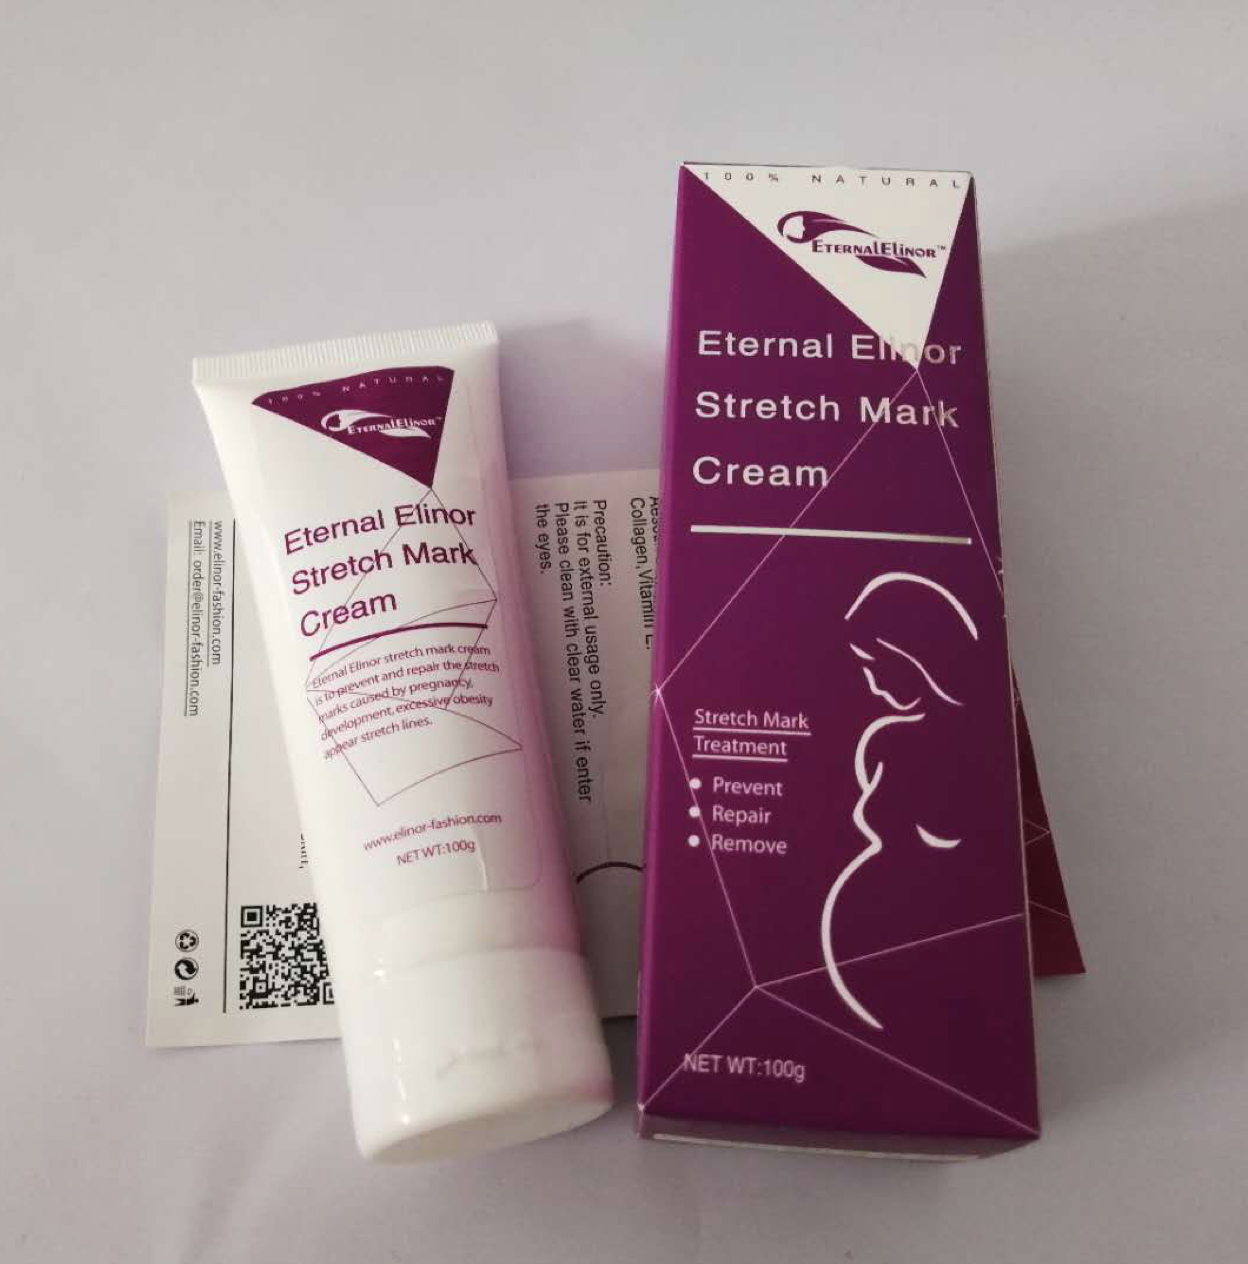 Oem Anti Cellulite Remove Stretch Marks Cream Private Label Your Own Krim Strechmark Drw Skincare 2018 05 11 164540 Eternalelinortm Mark